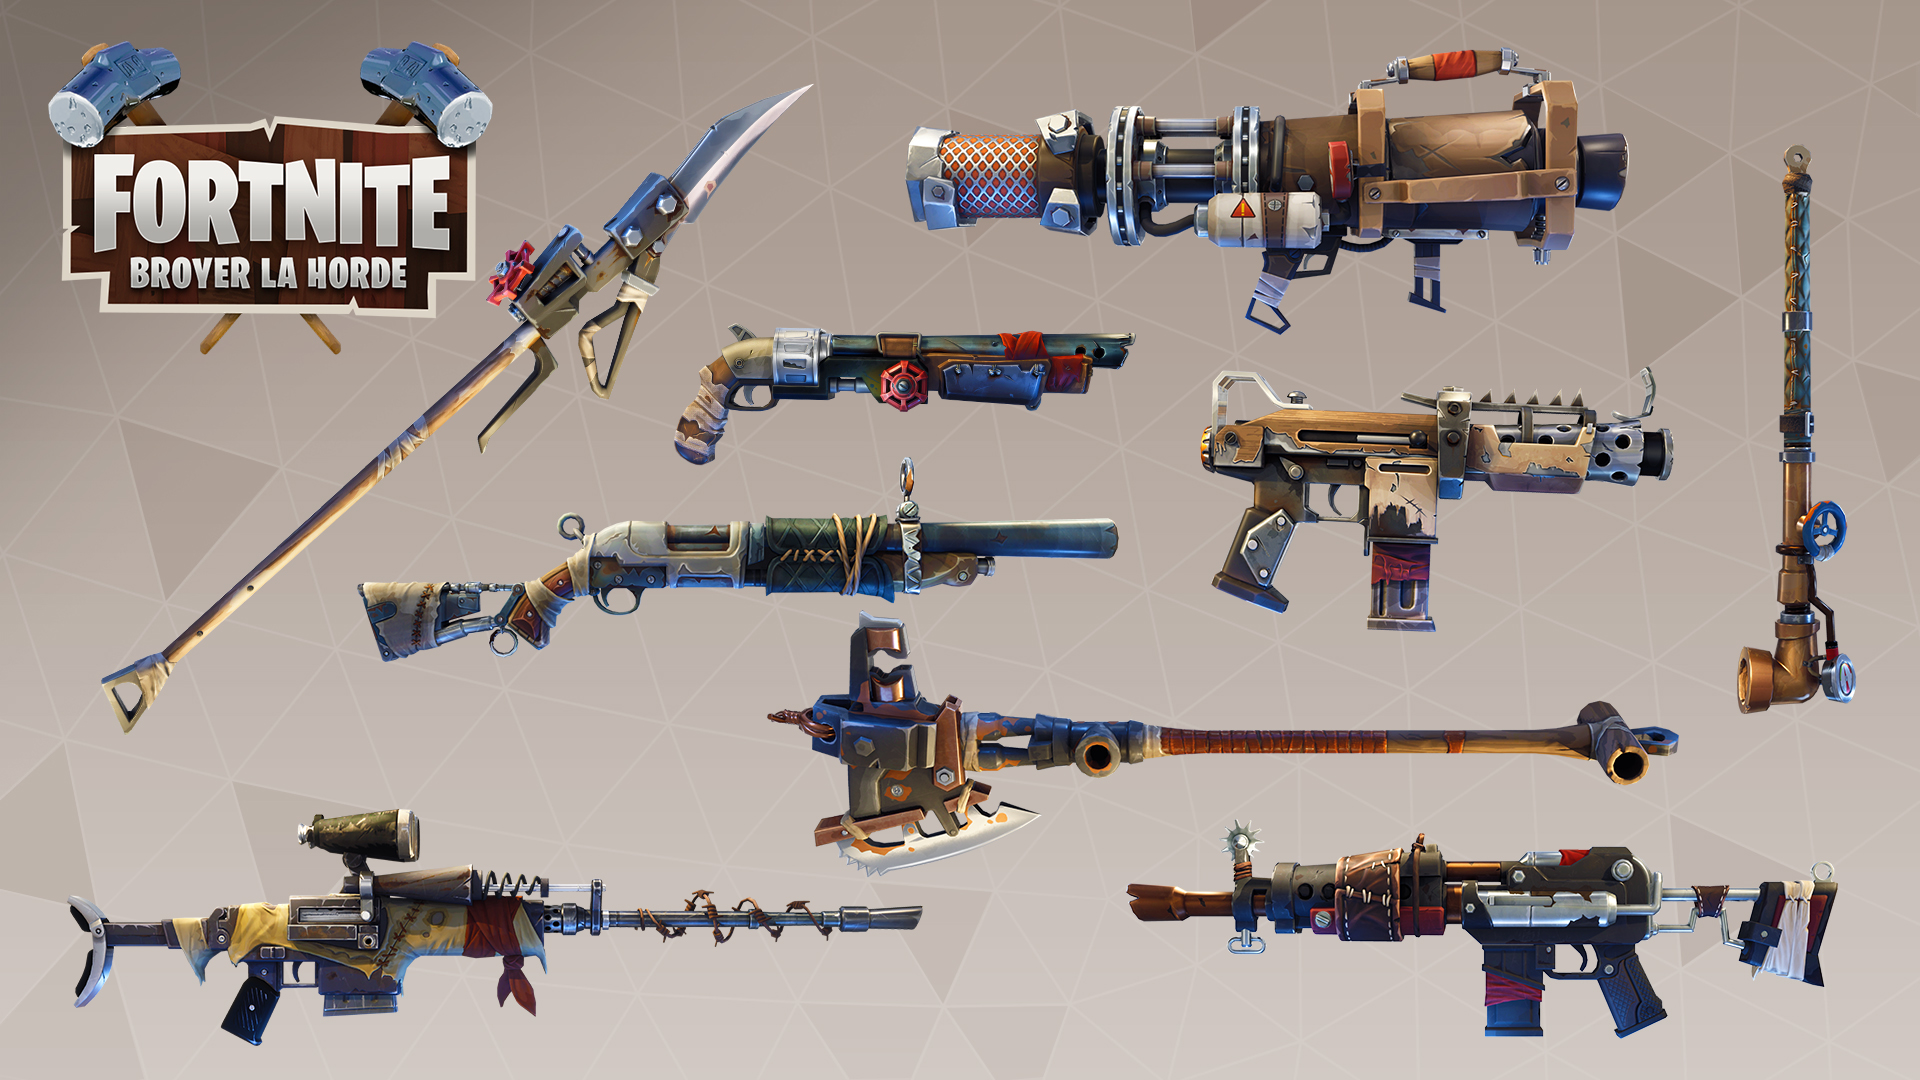 Fortnite%2Fblog%2Fea-1-7-patch-notes%2FFR-HB-Weapons-1920x1080-d9a9744ded6481b7d81173cc9b3a20c13fbf04b3